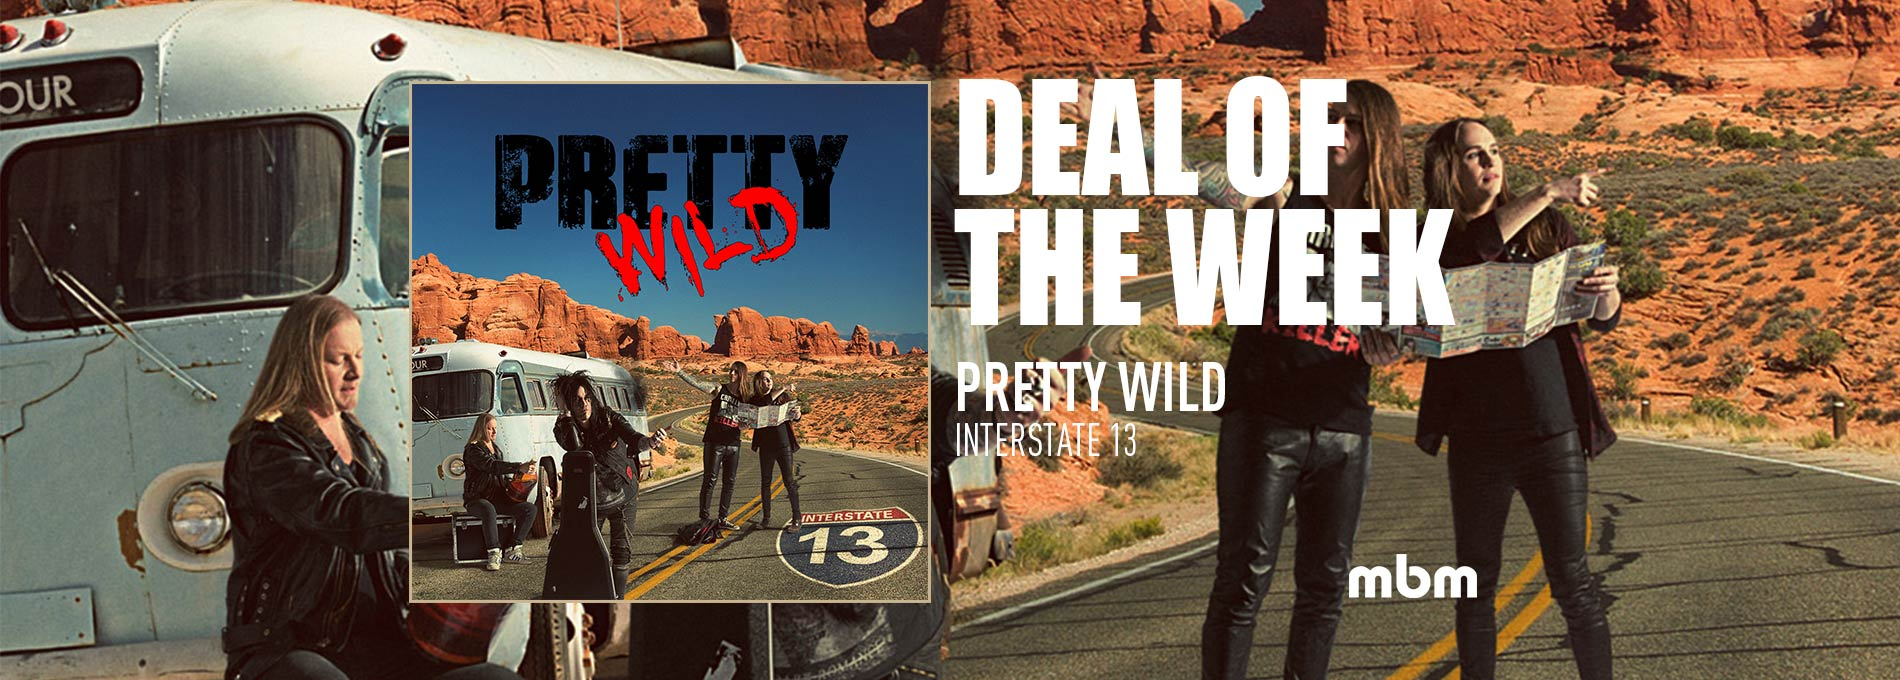 Deal Of The Week: PRETTY WILD - Interstate 13